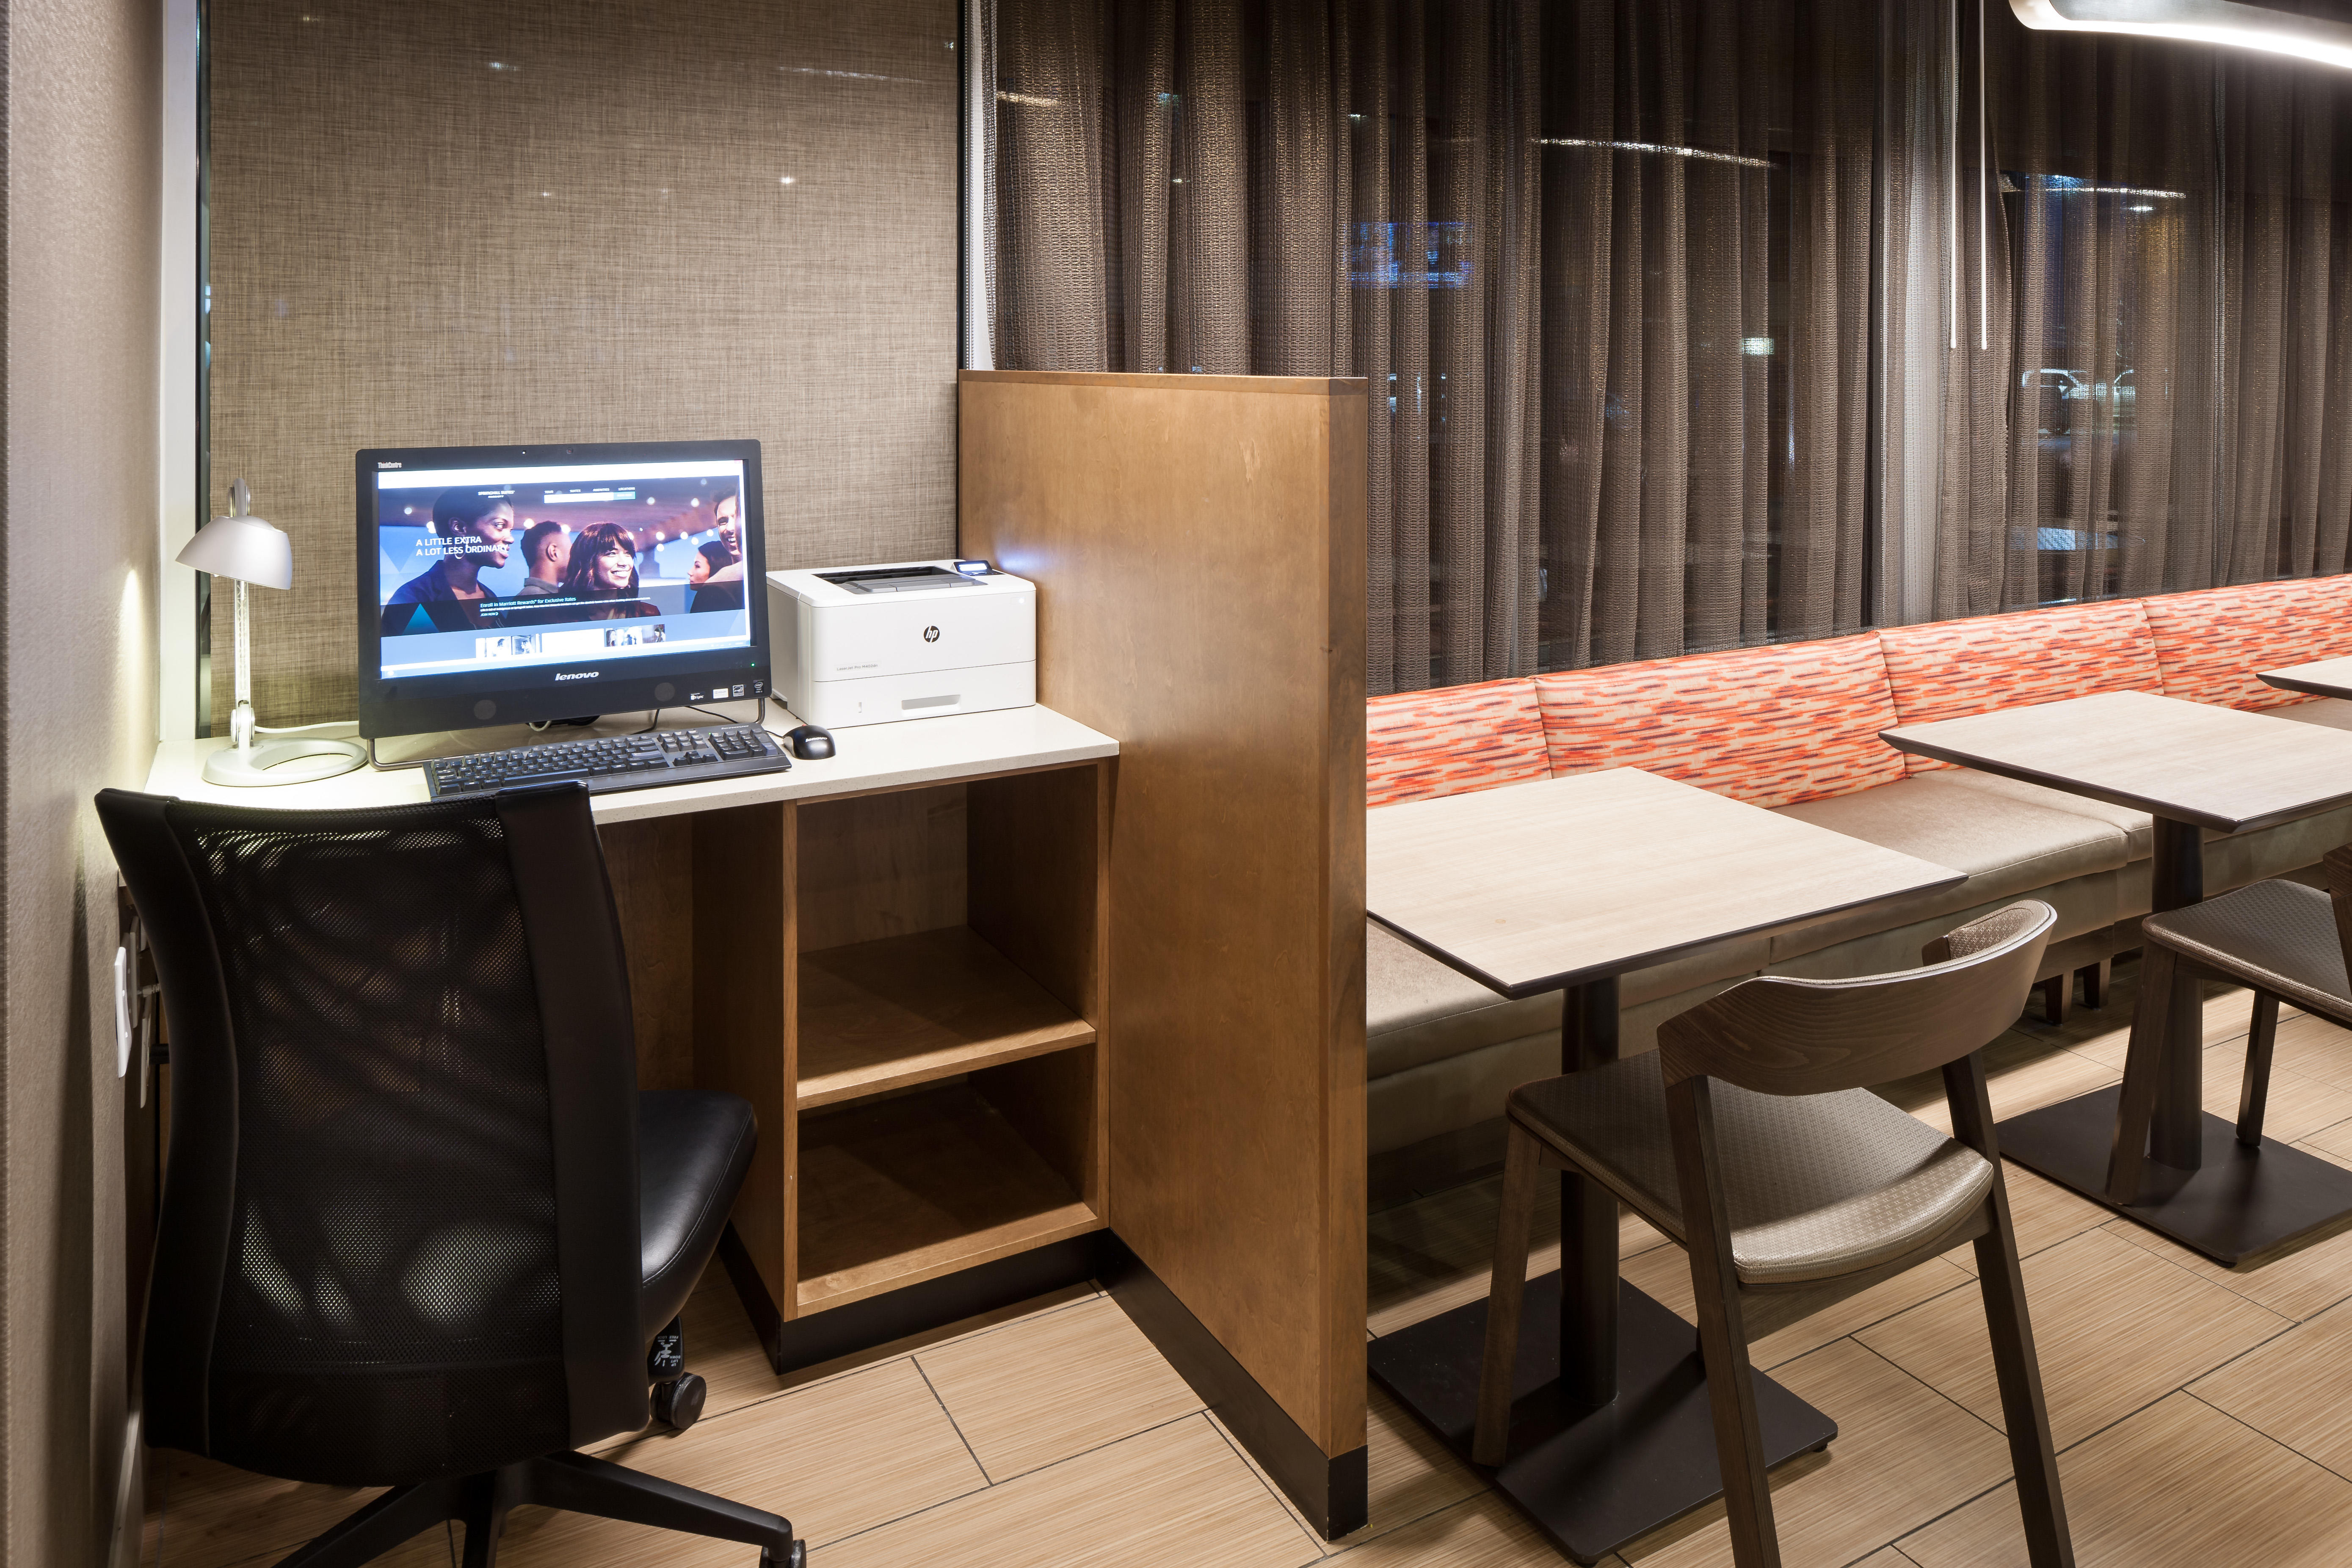 SpringHill Suites by Marriott Salt Lake City Airport image 9